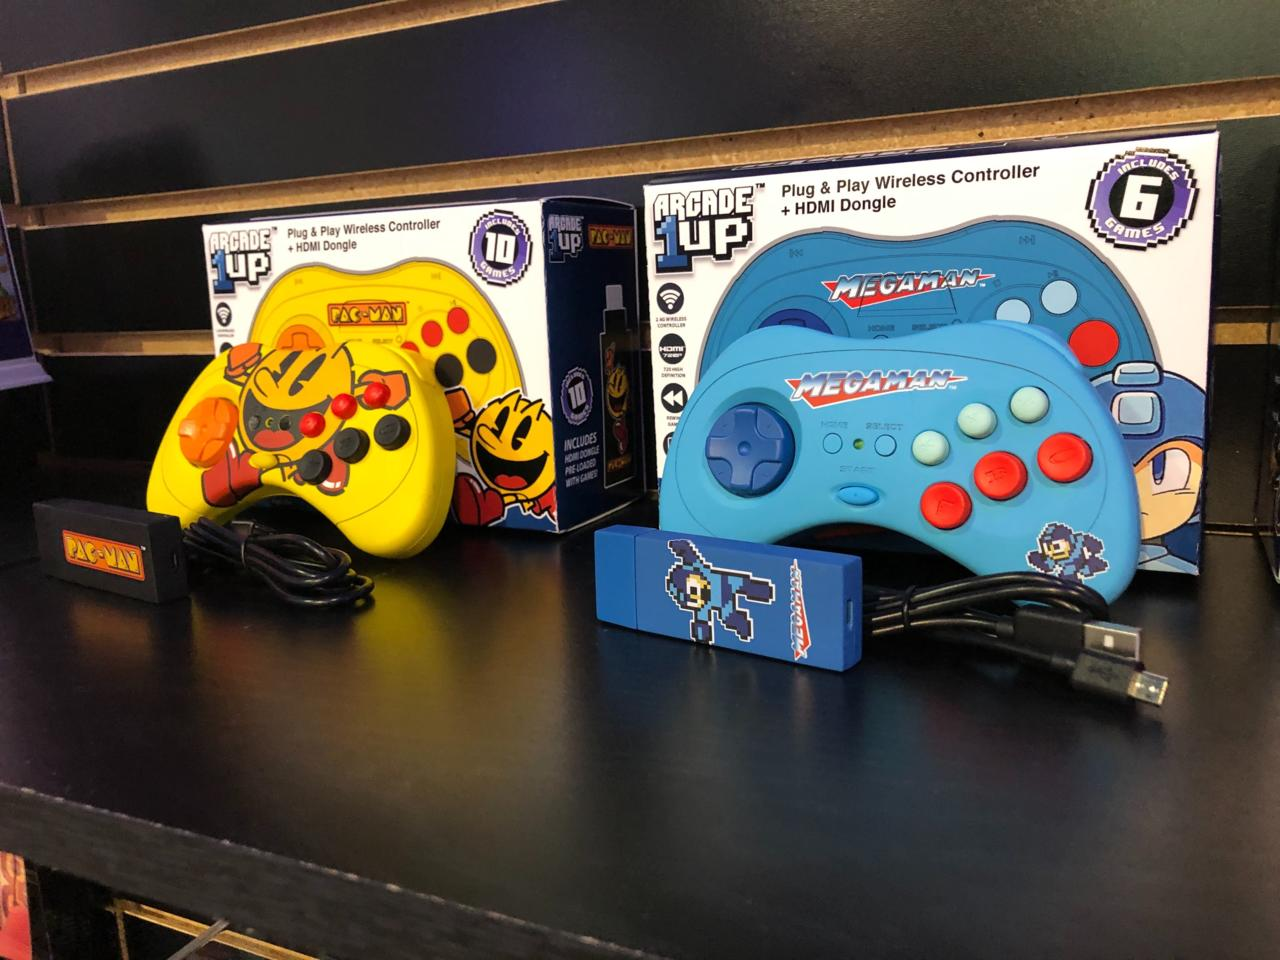 Plug-And-Play devices from Arcade1Up